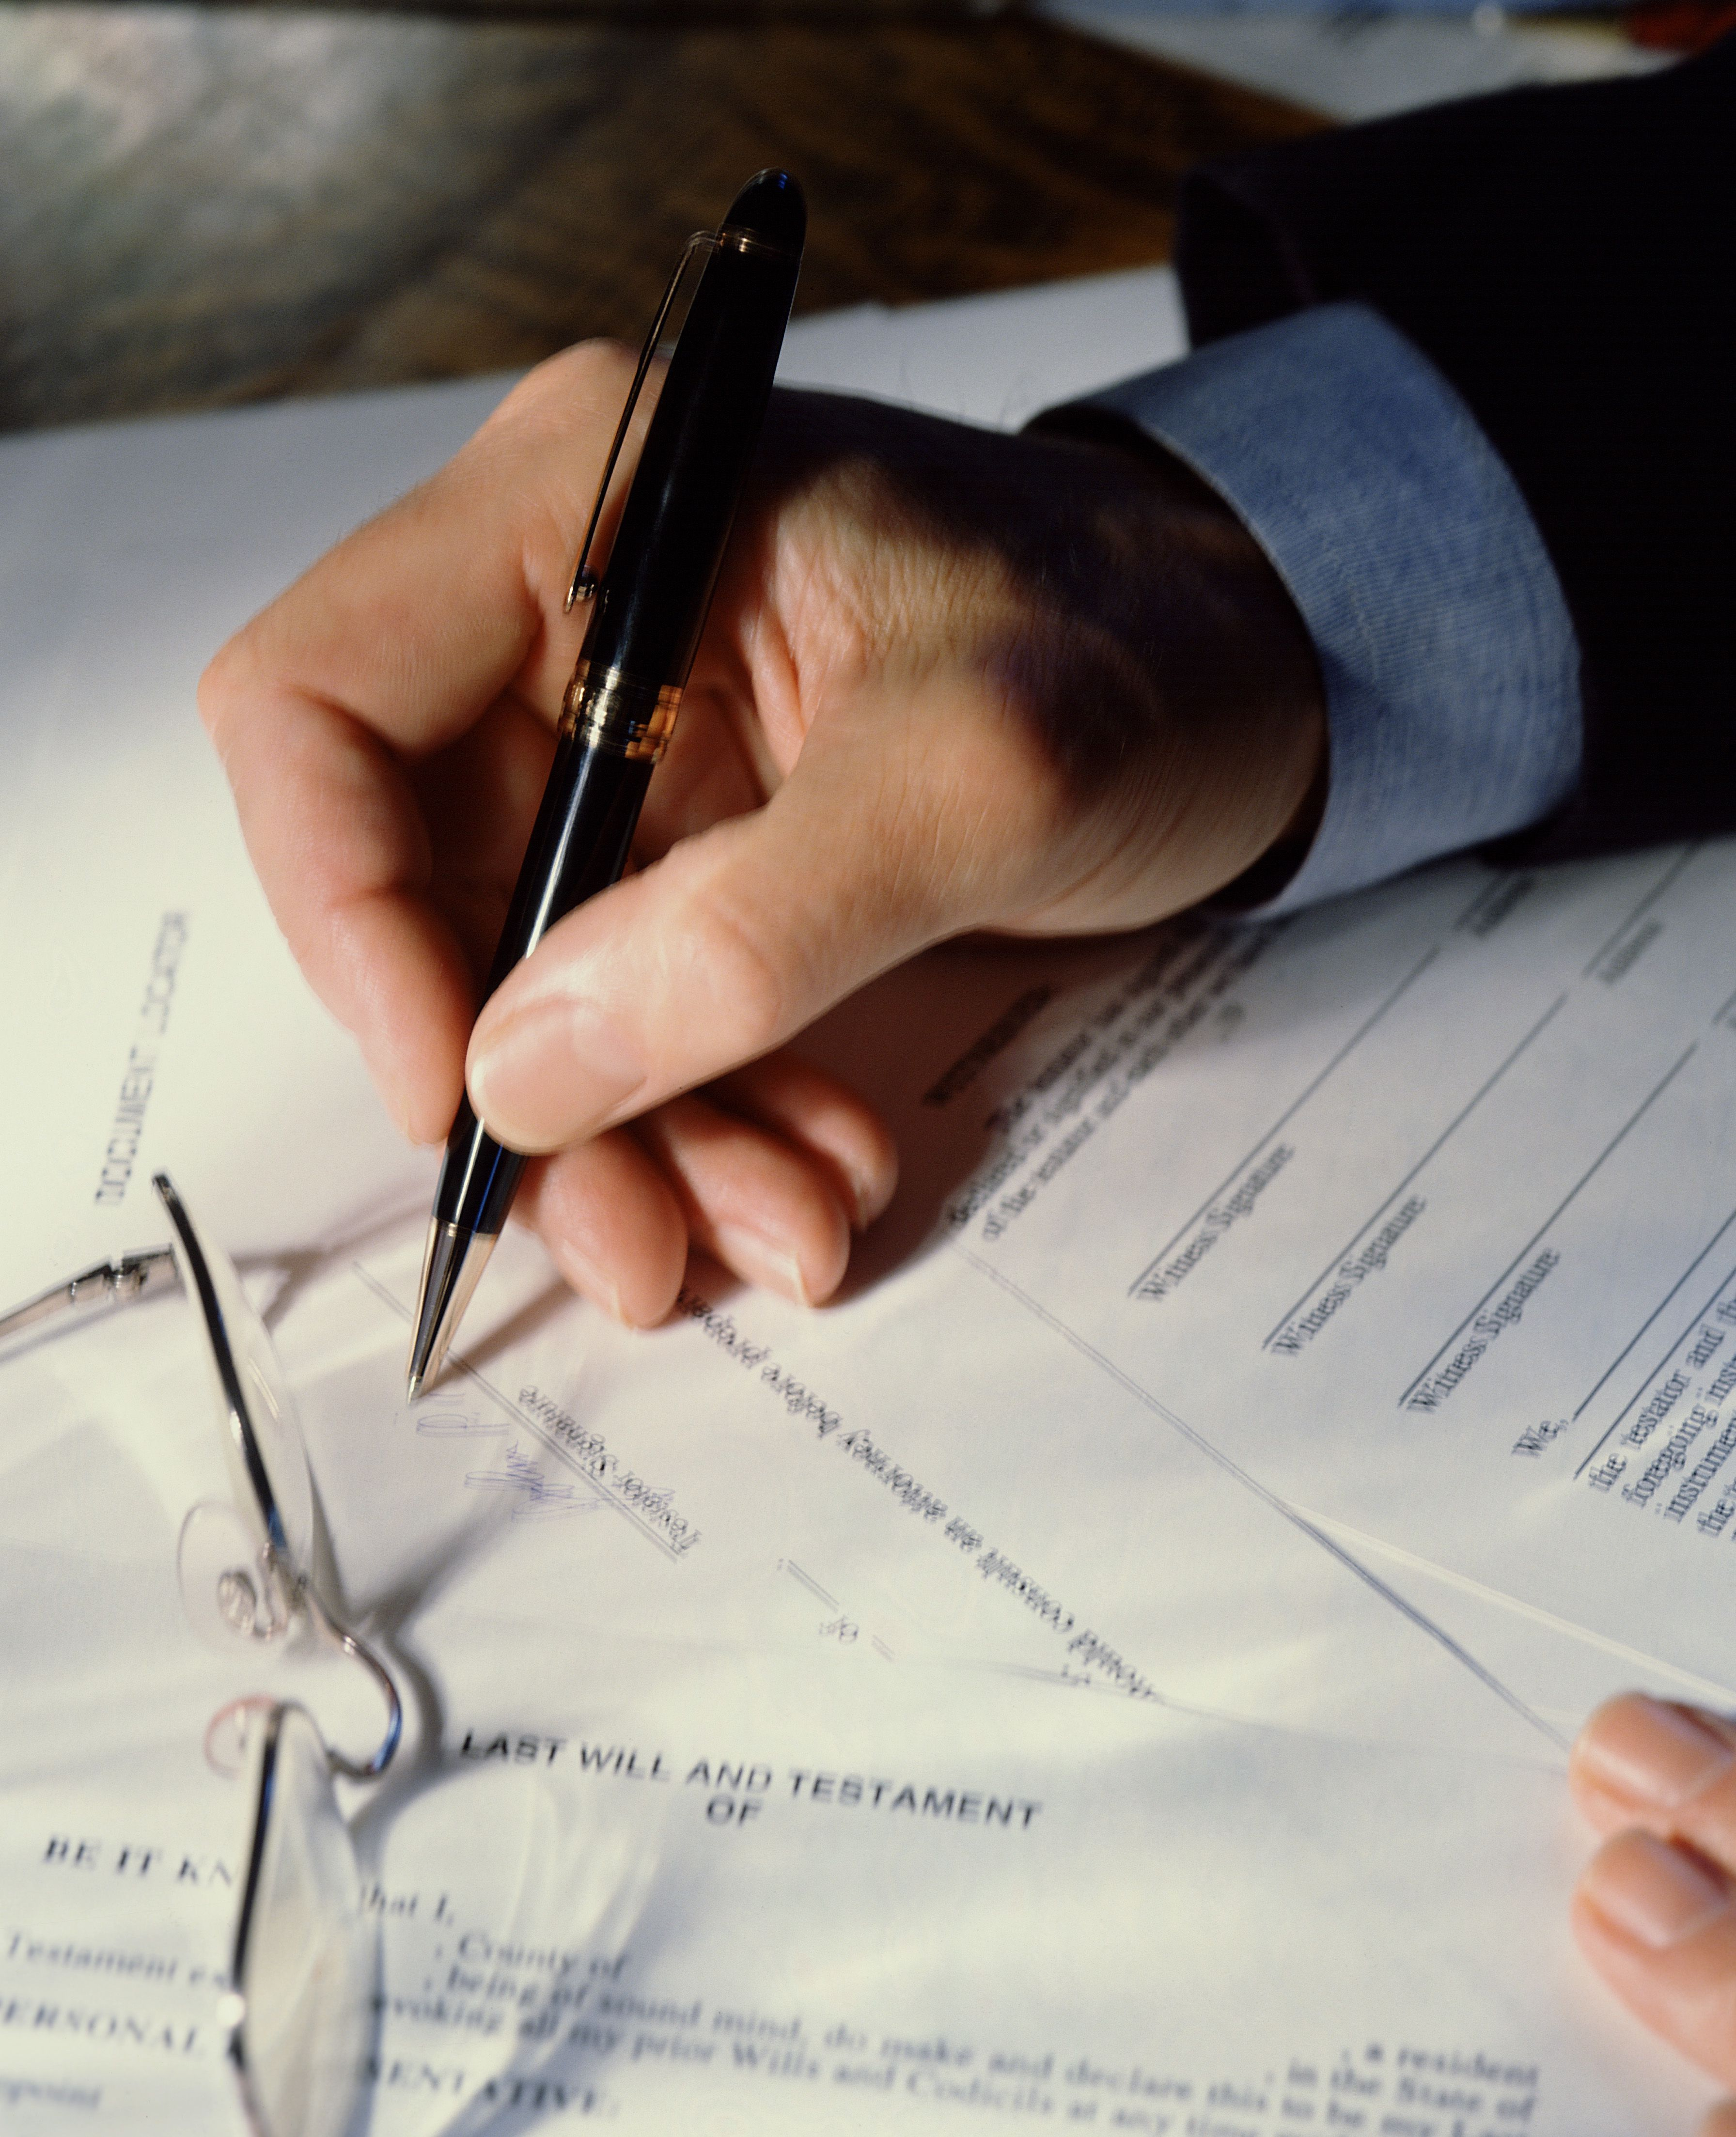 Testamentary Trust Funds and Inter Vivos Trust Funds